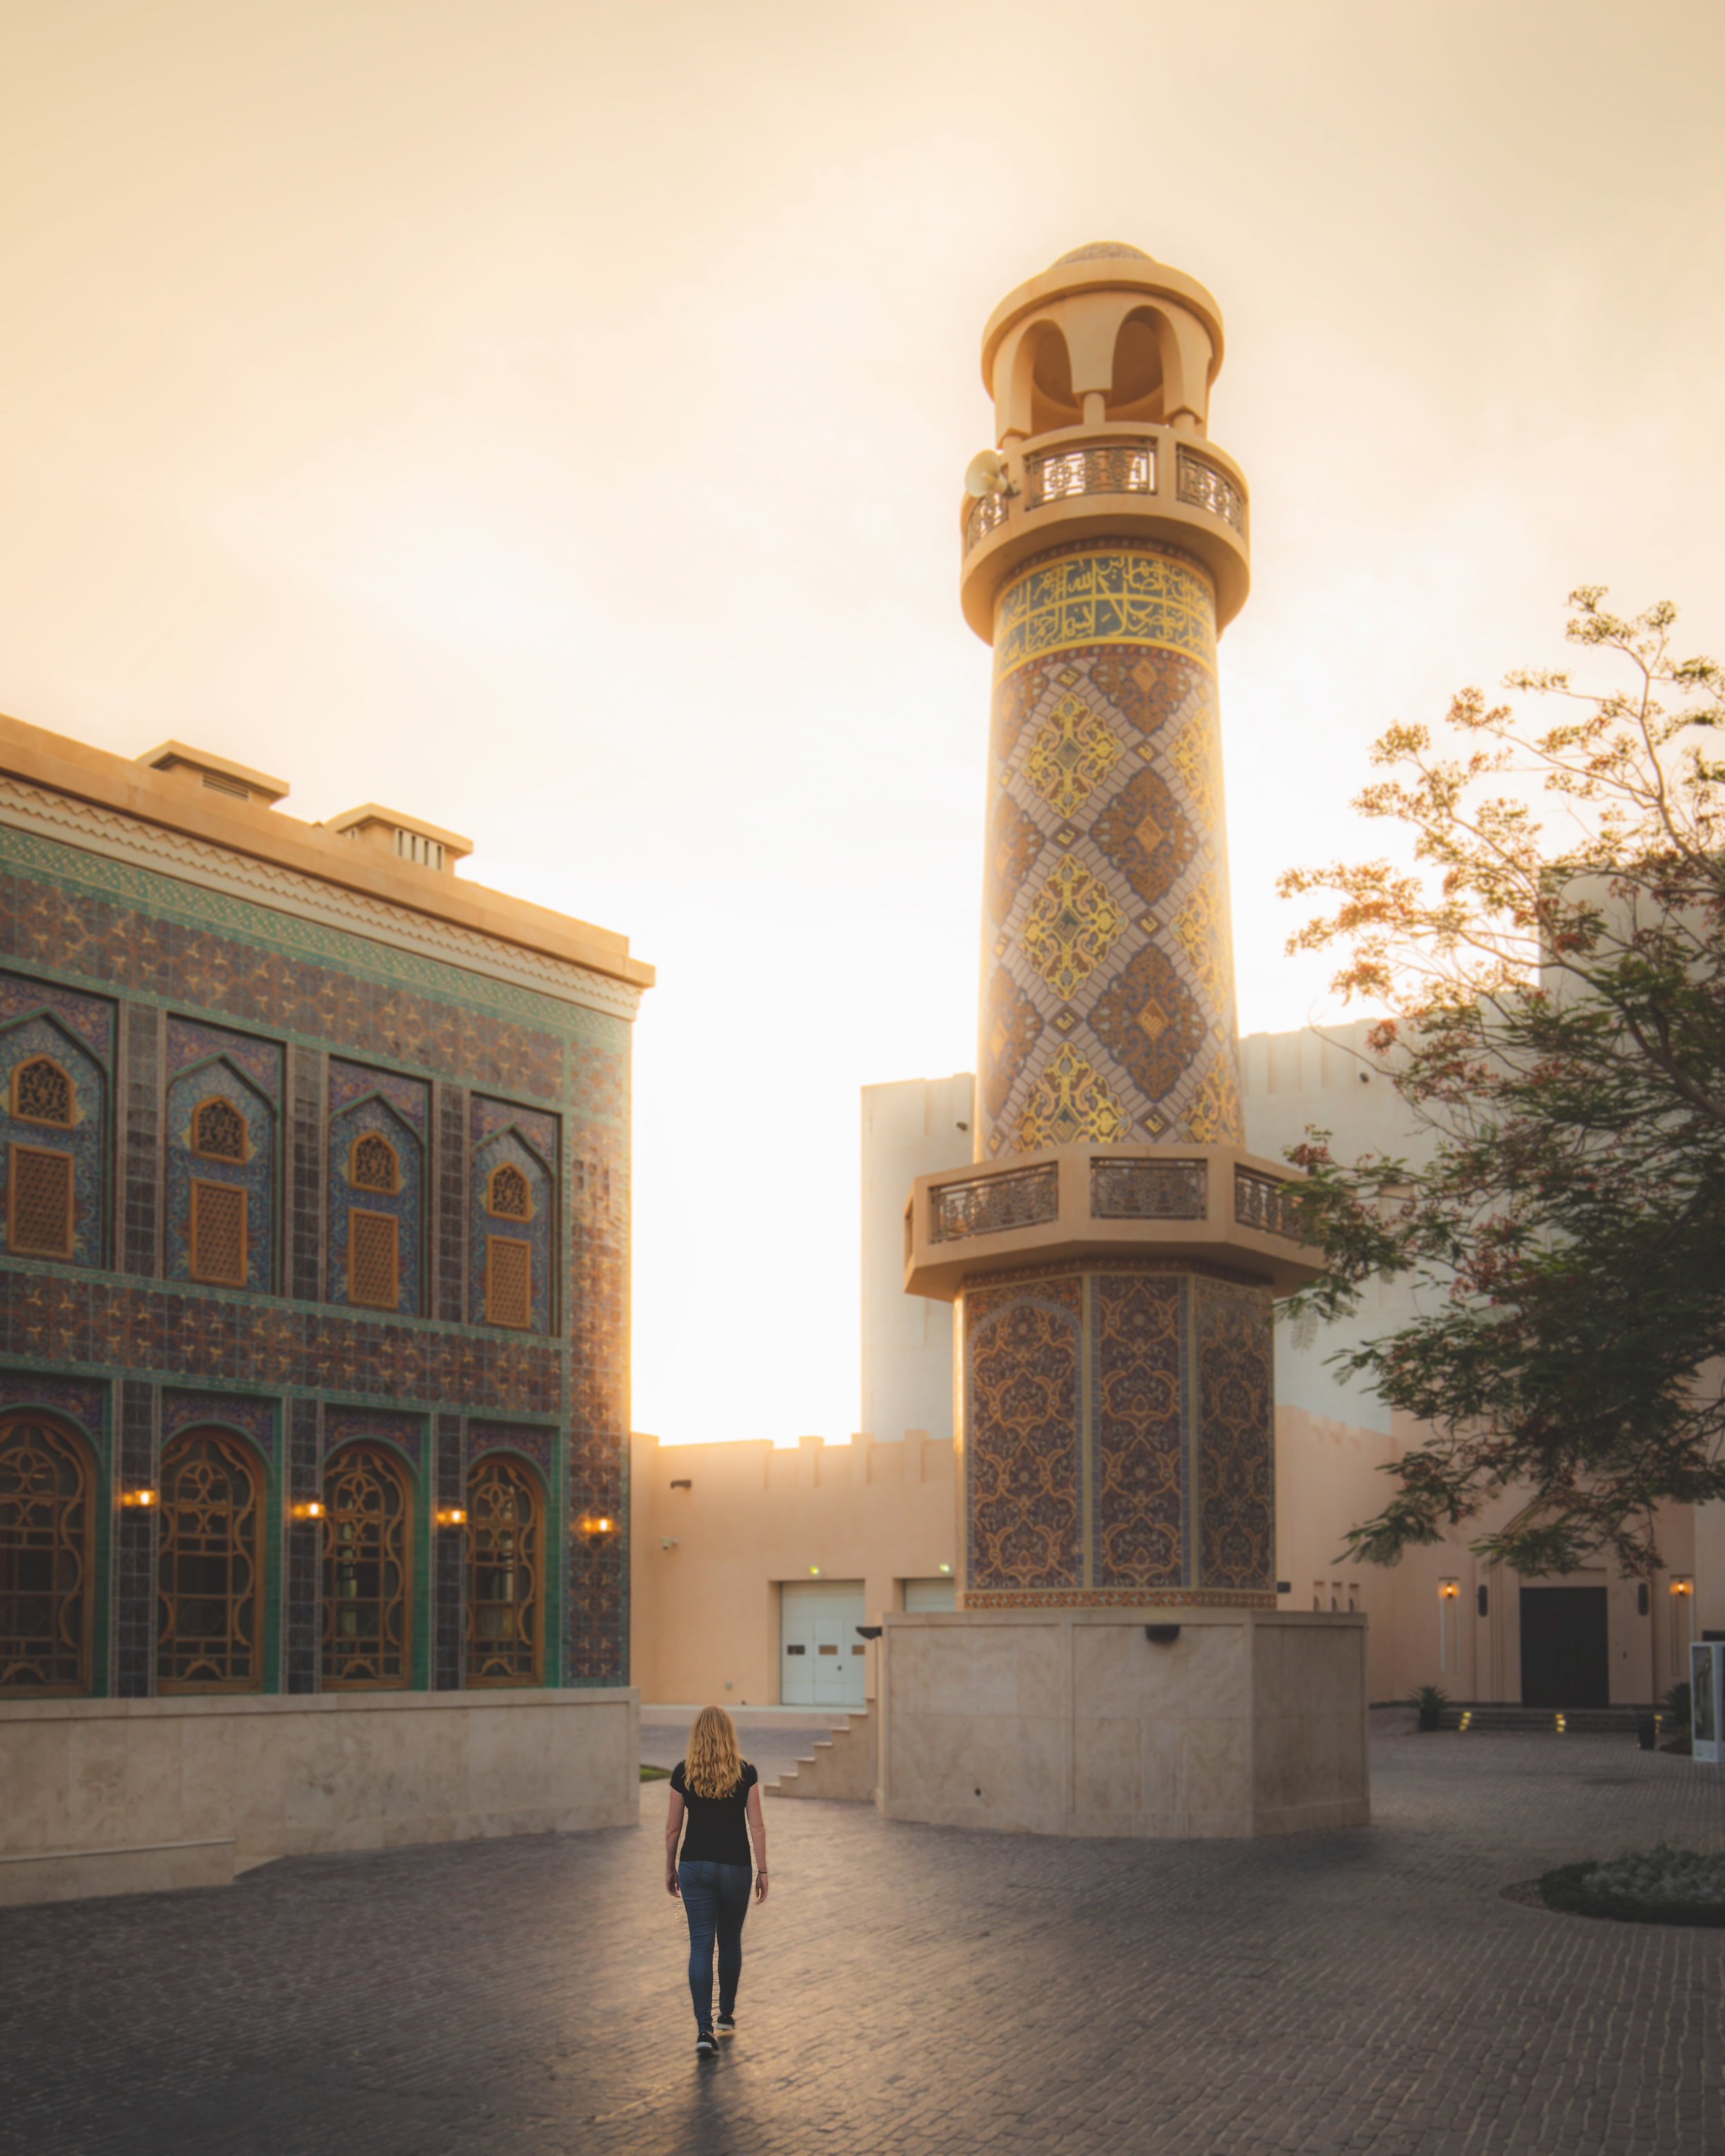 Katari Mosque - Things to see in Doha